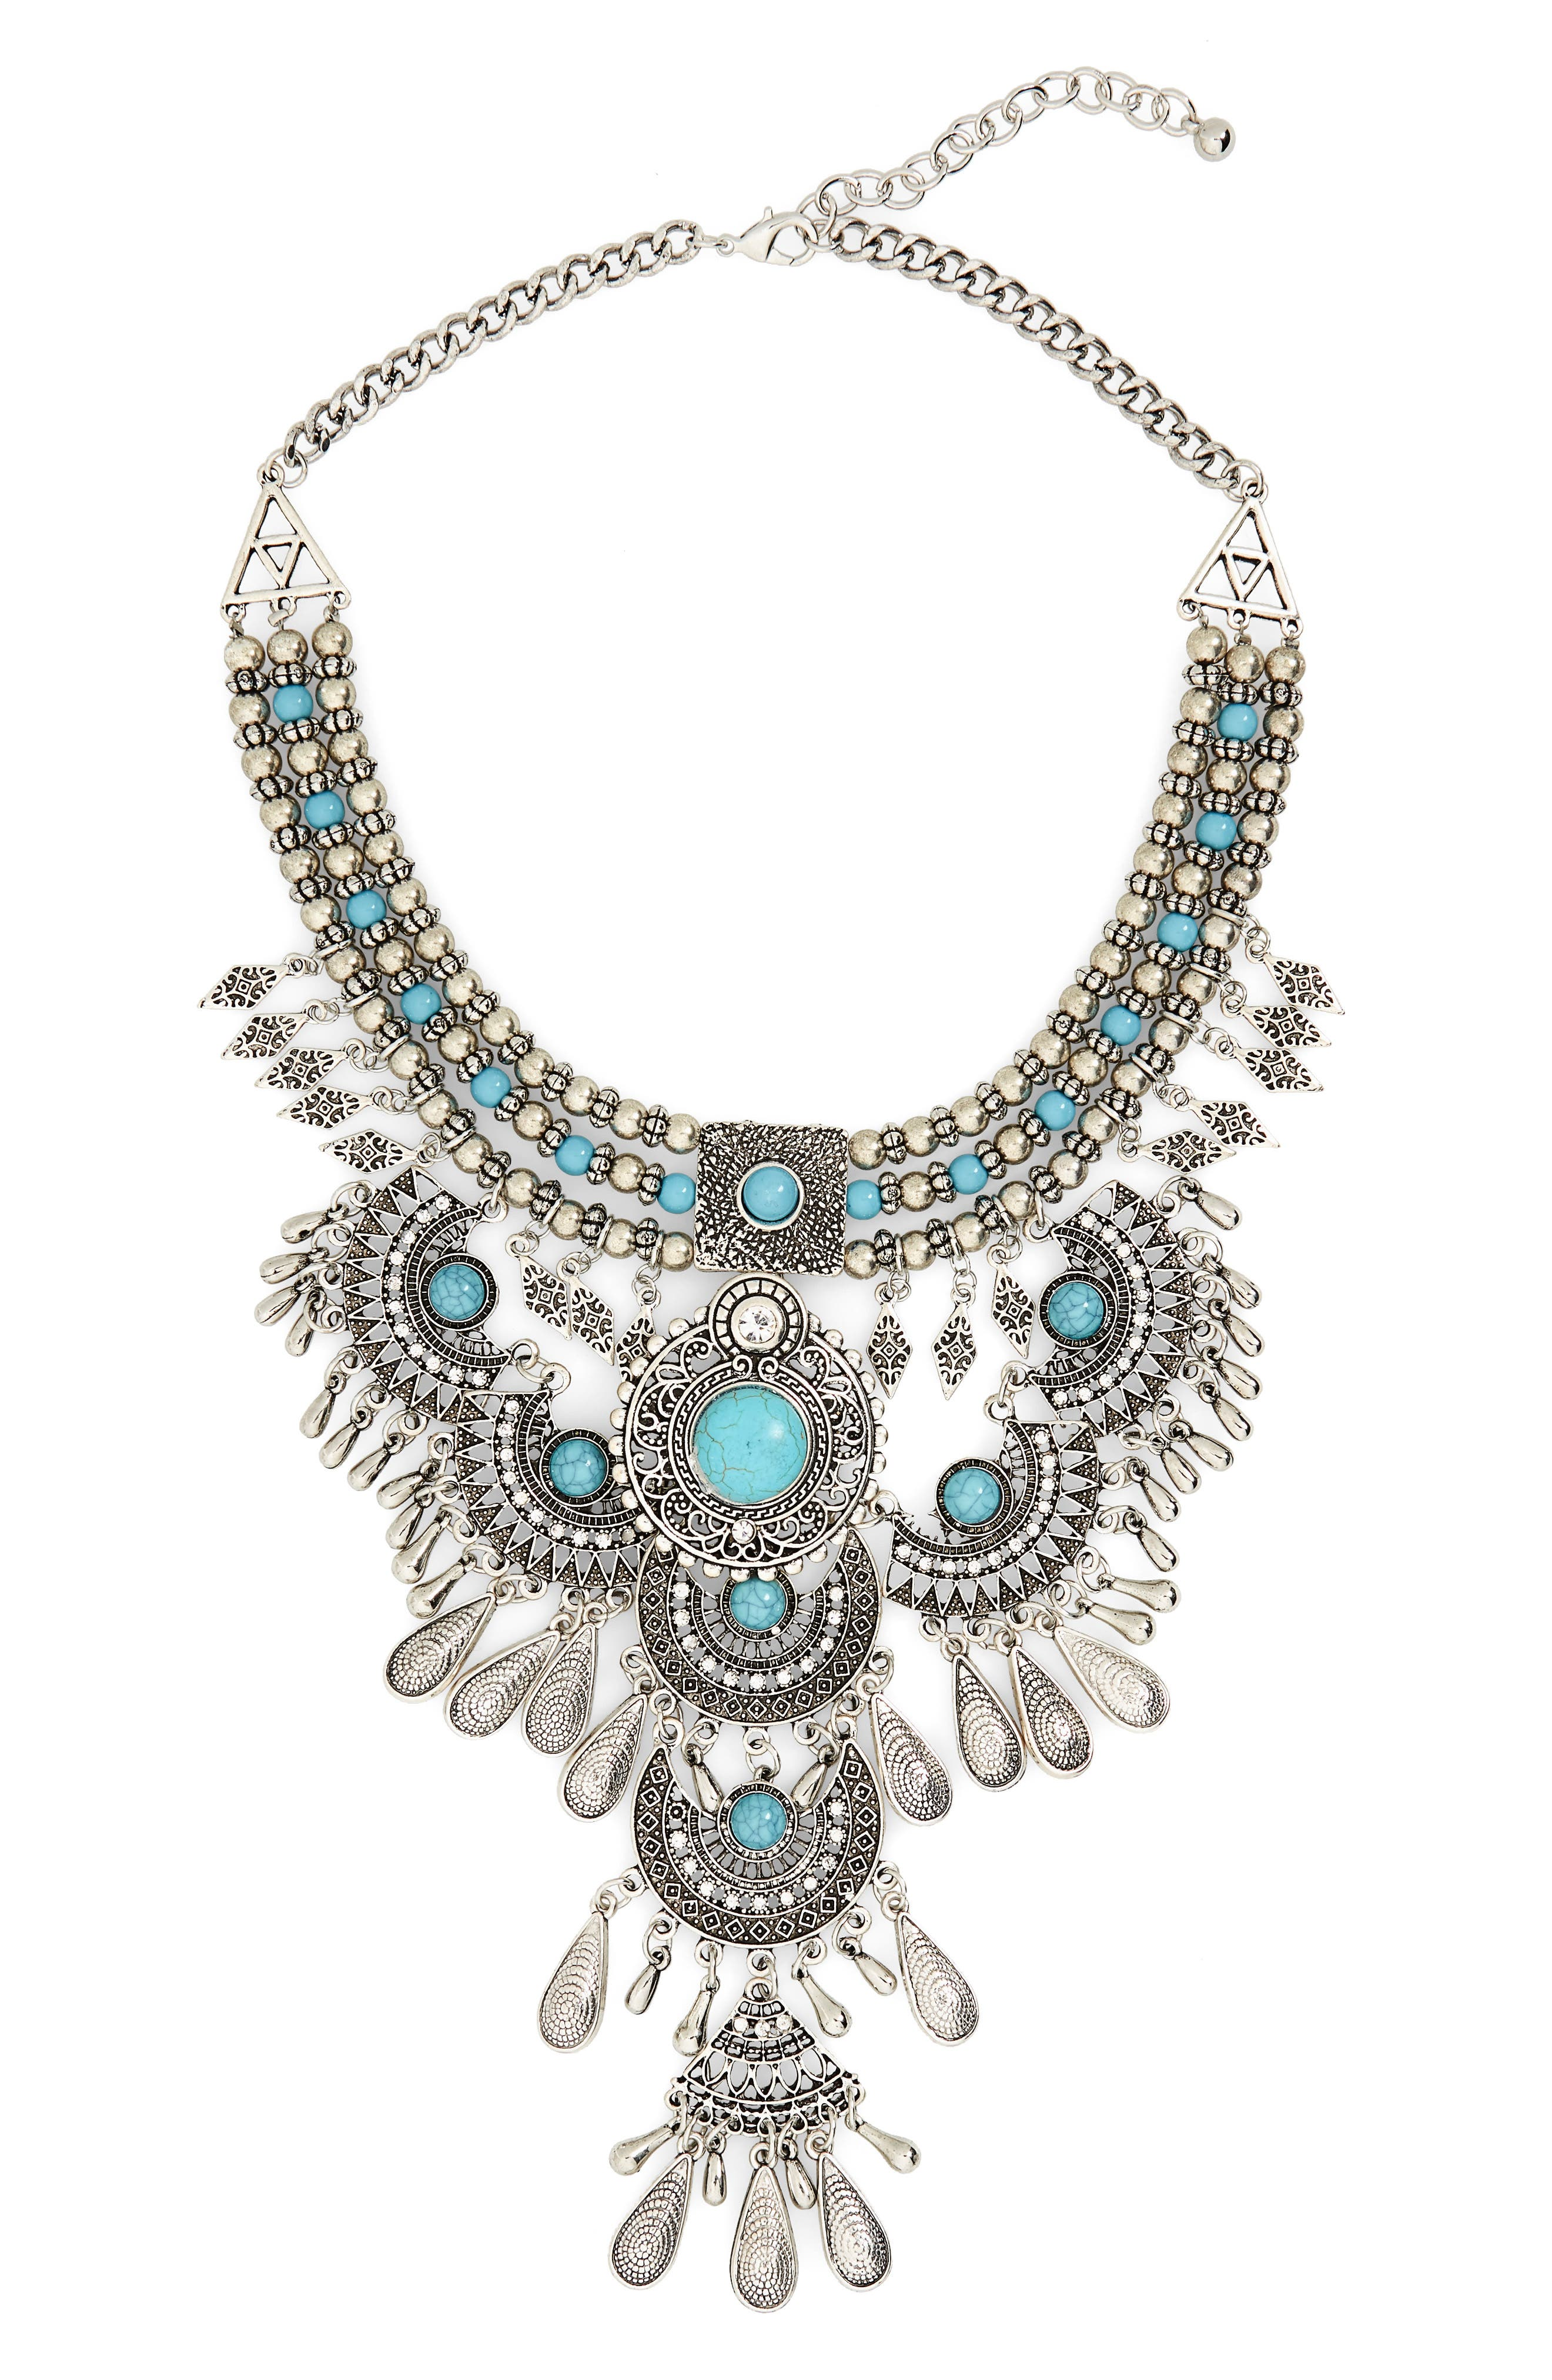 Western Bib Necklace,                         Main,                         color, Silver/ Turquoise